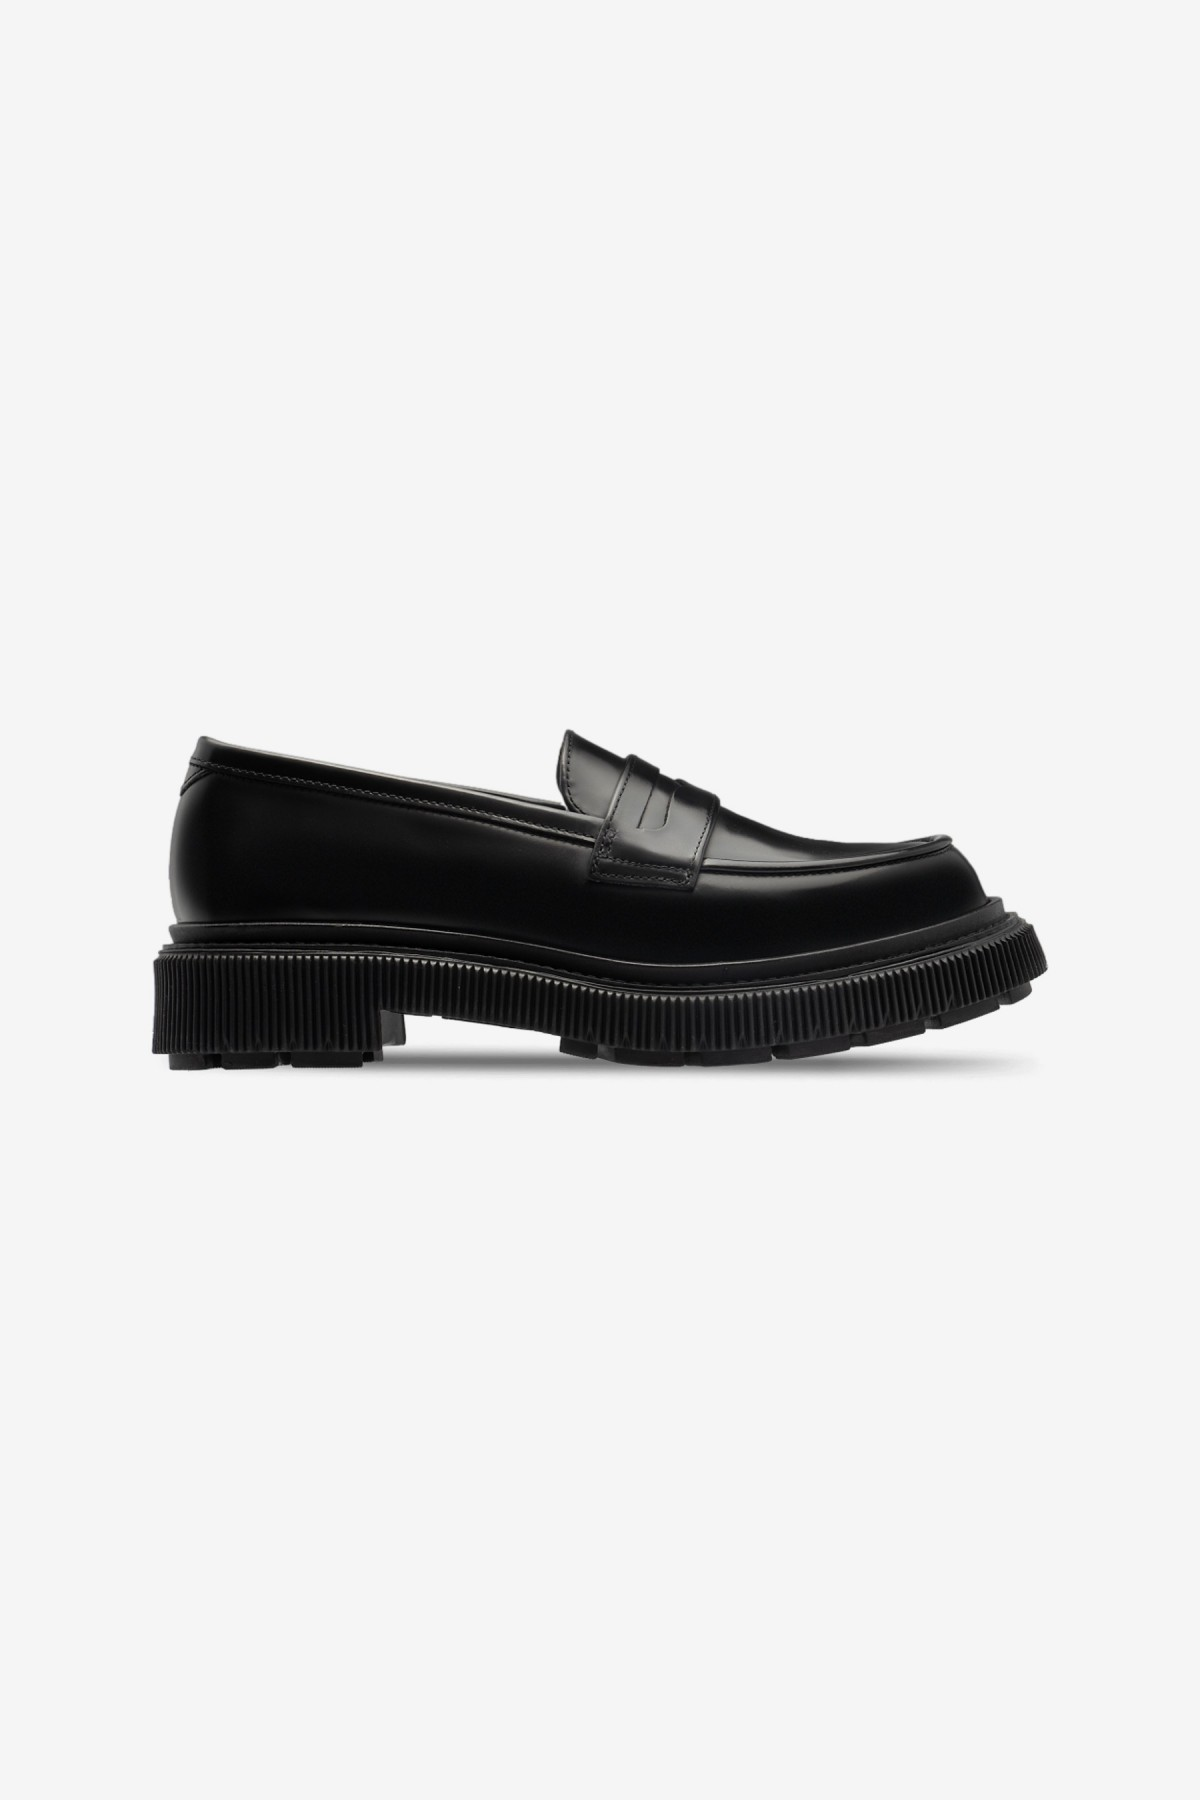 Adieu Type 159 Penny Loafer in Black